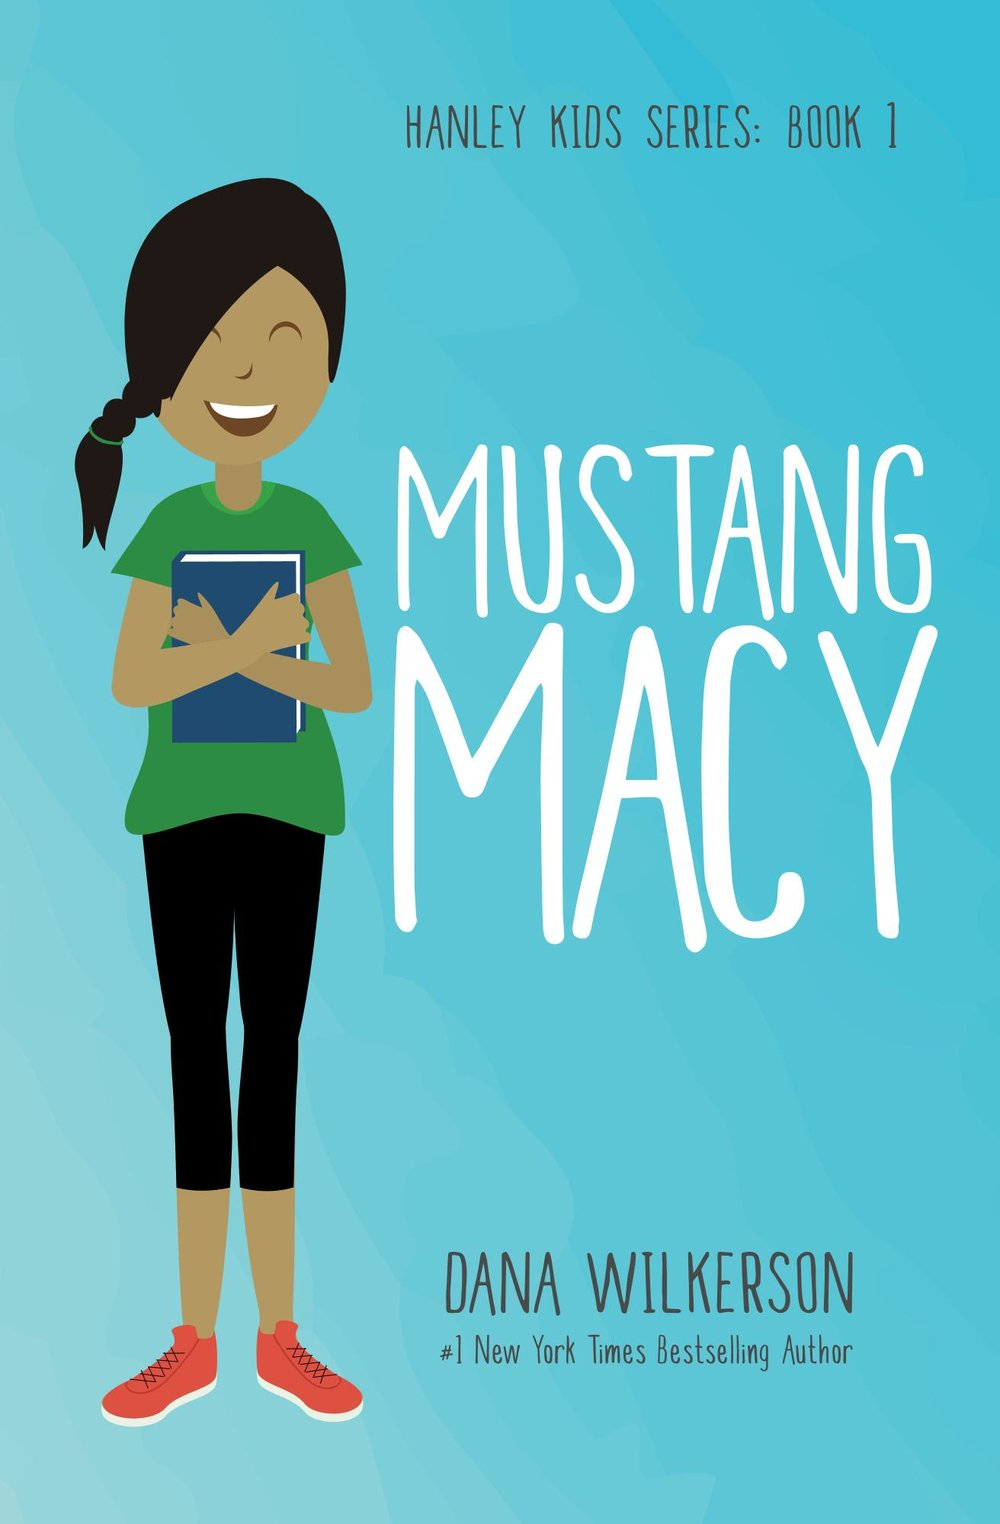 Hanley Kids Series Book 1: Mustang Macy